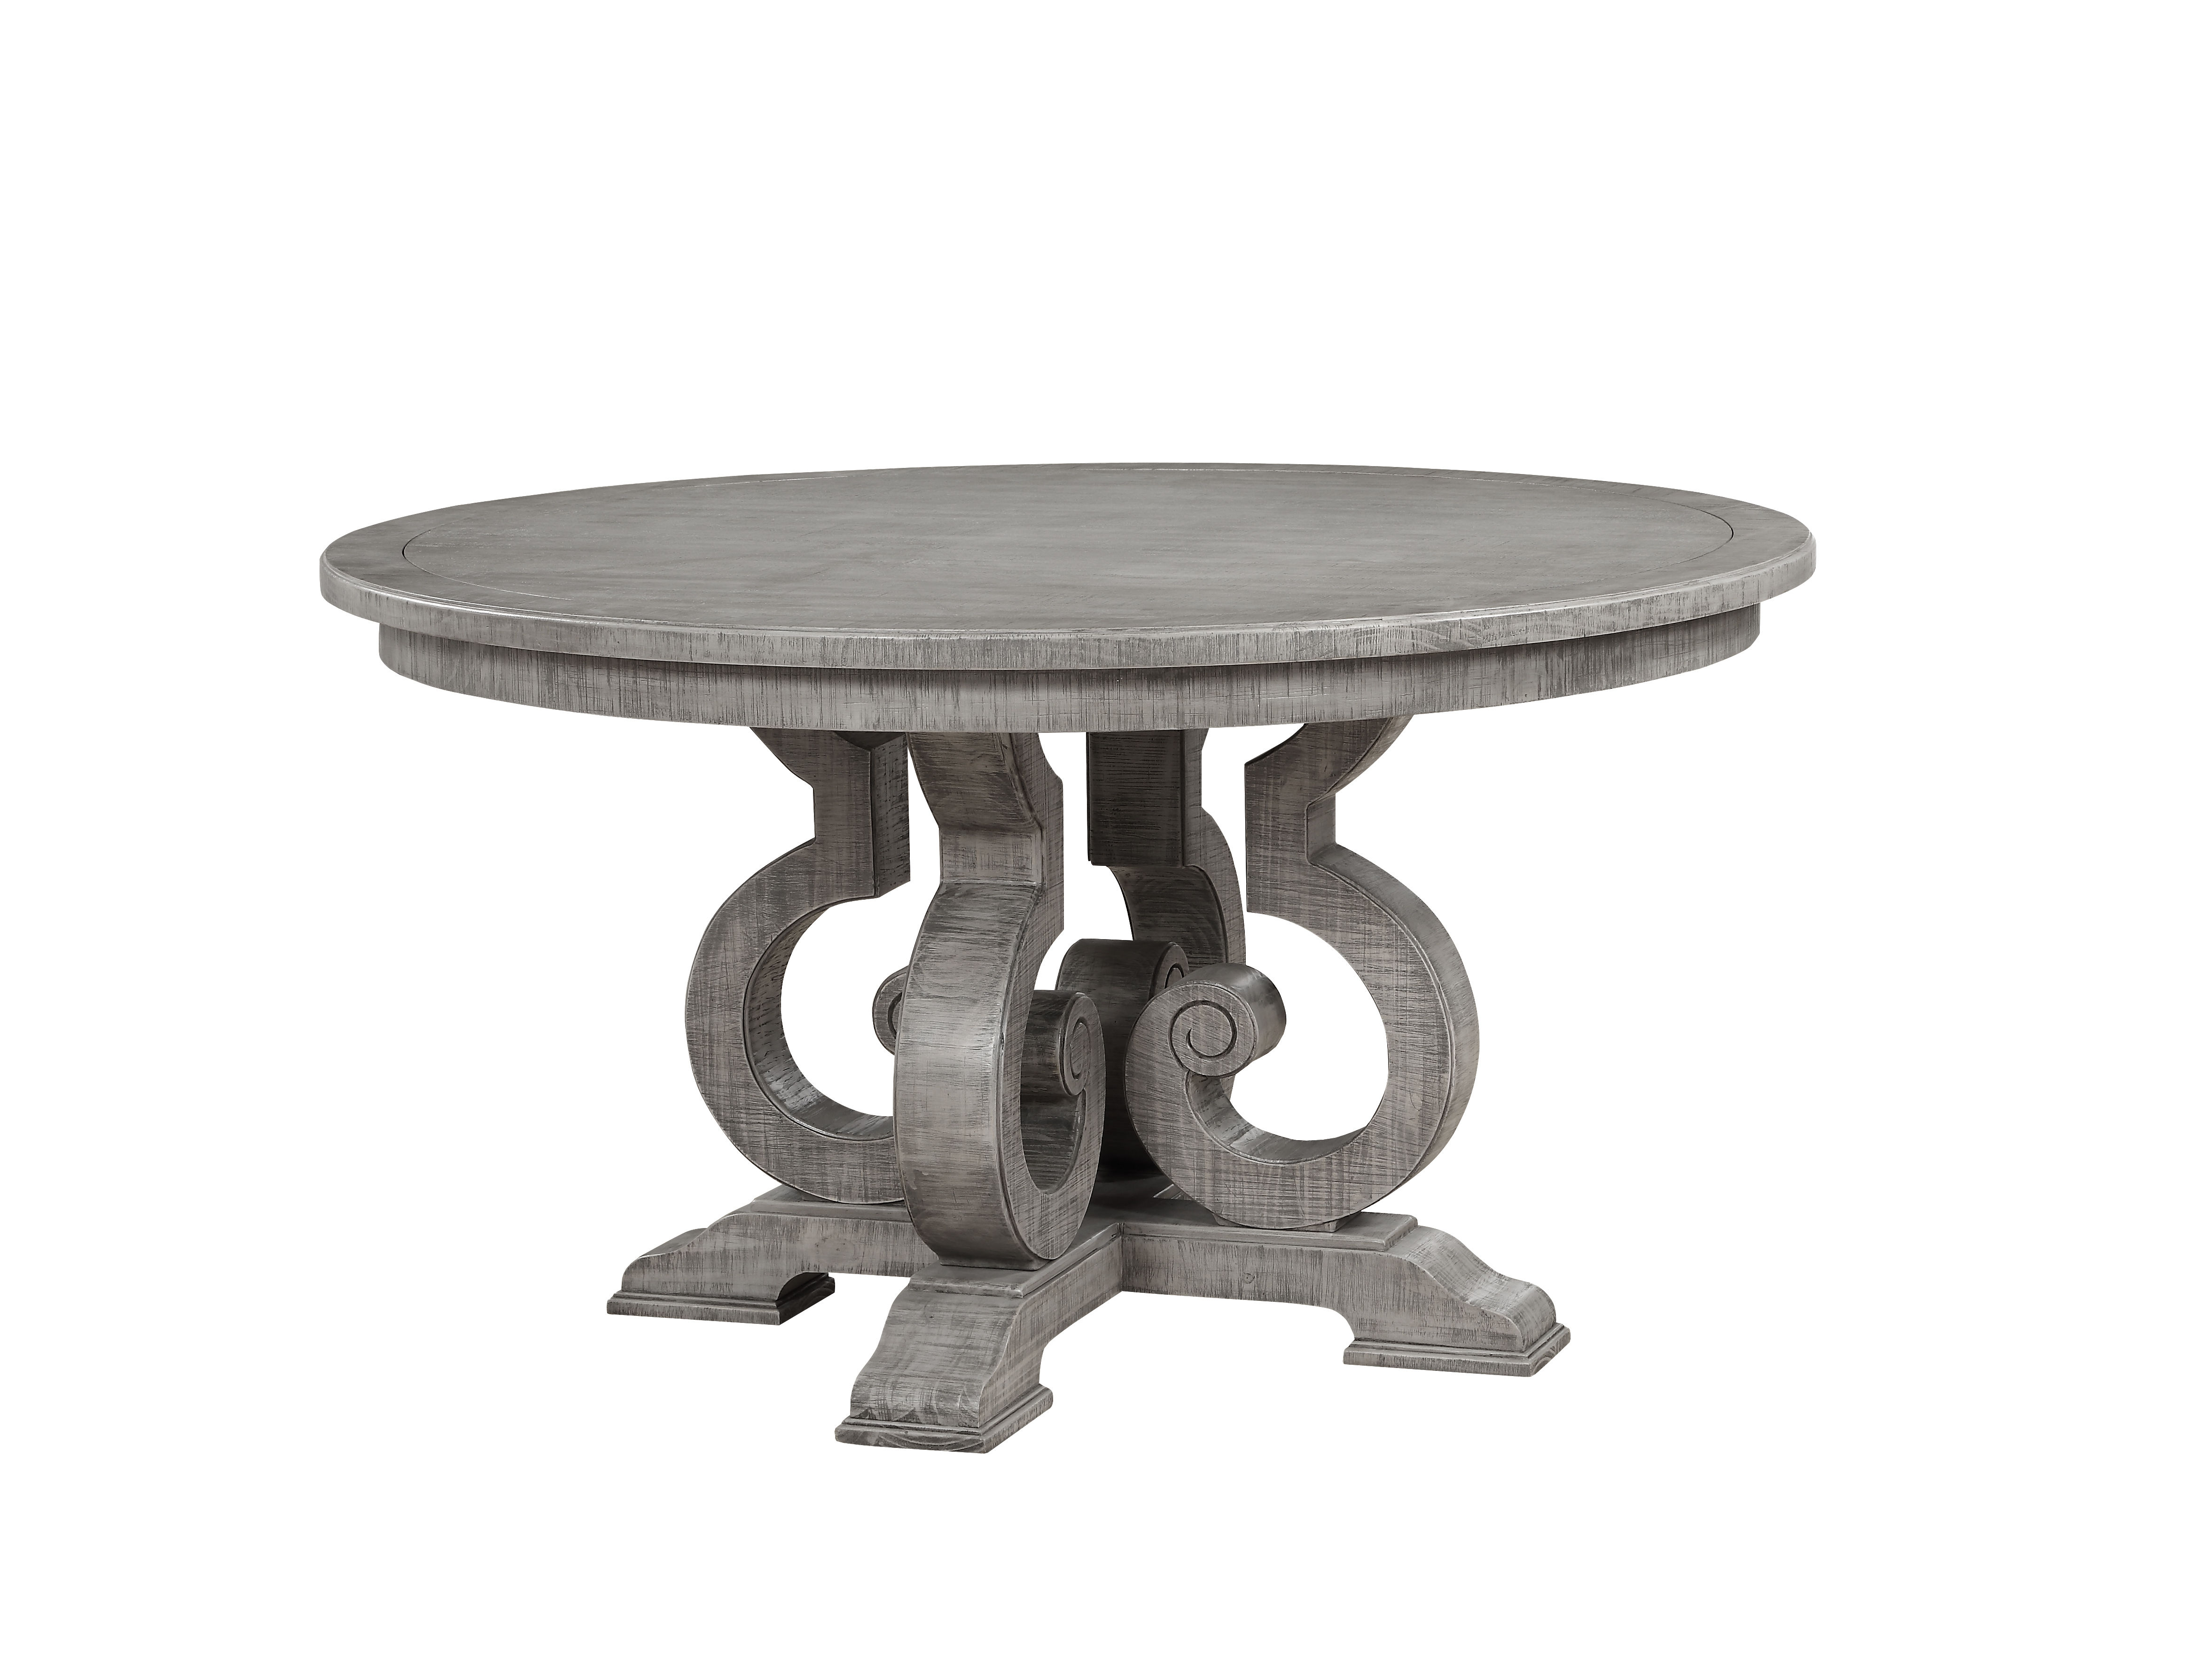 Acme Furniture Artesia Salvaged Natural 54 Inch Round Dining Table